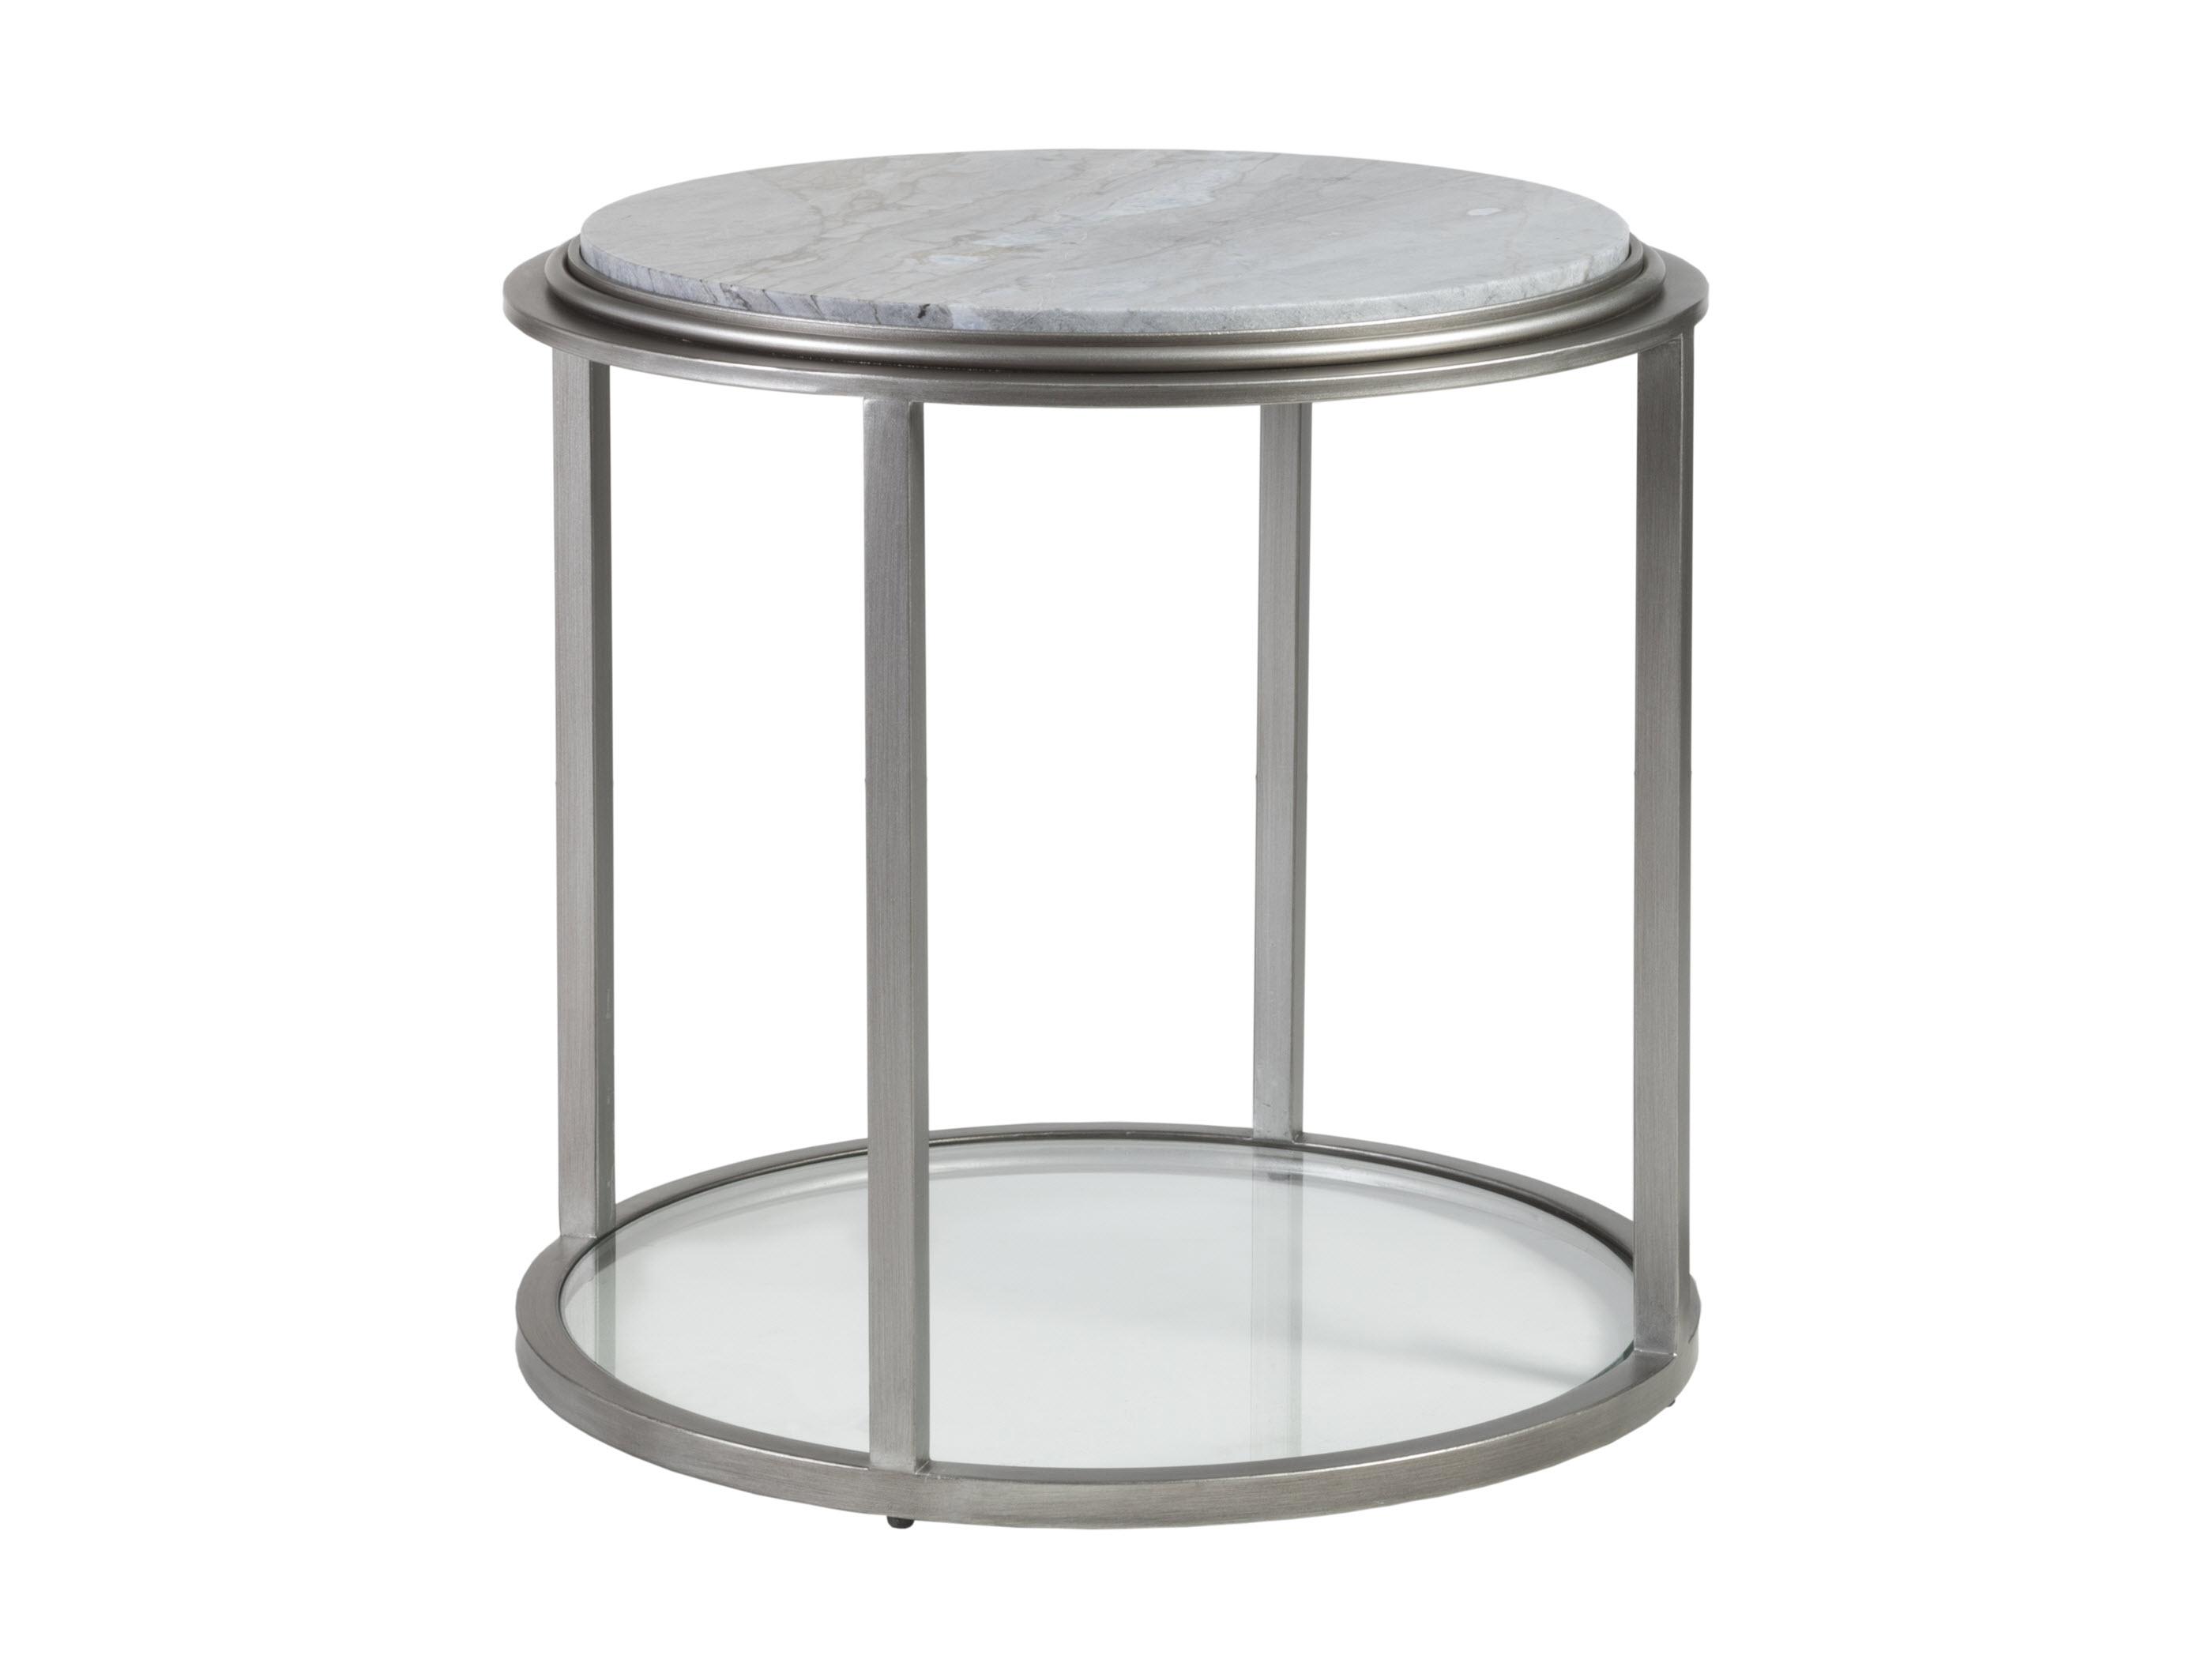 Treville Round End Table by Artistica at Sprintz Furniture